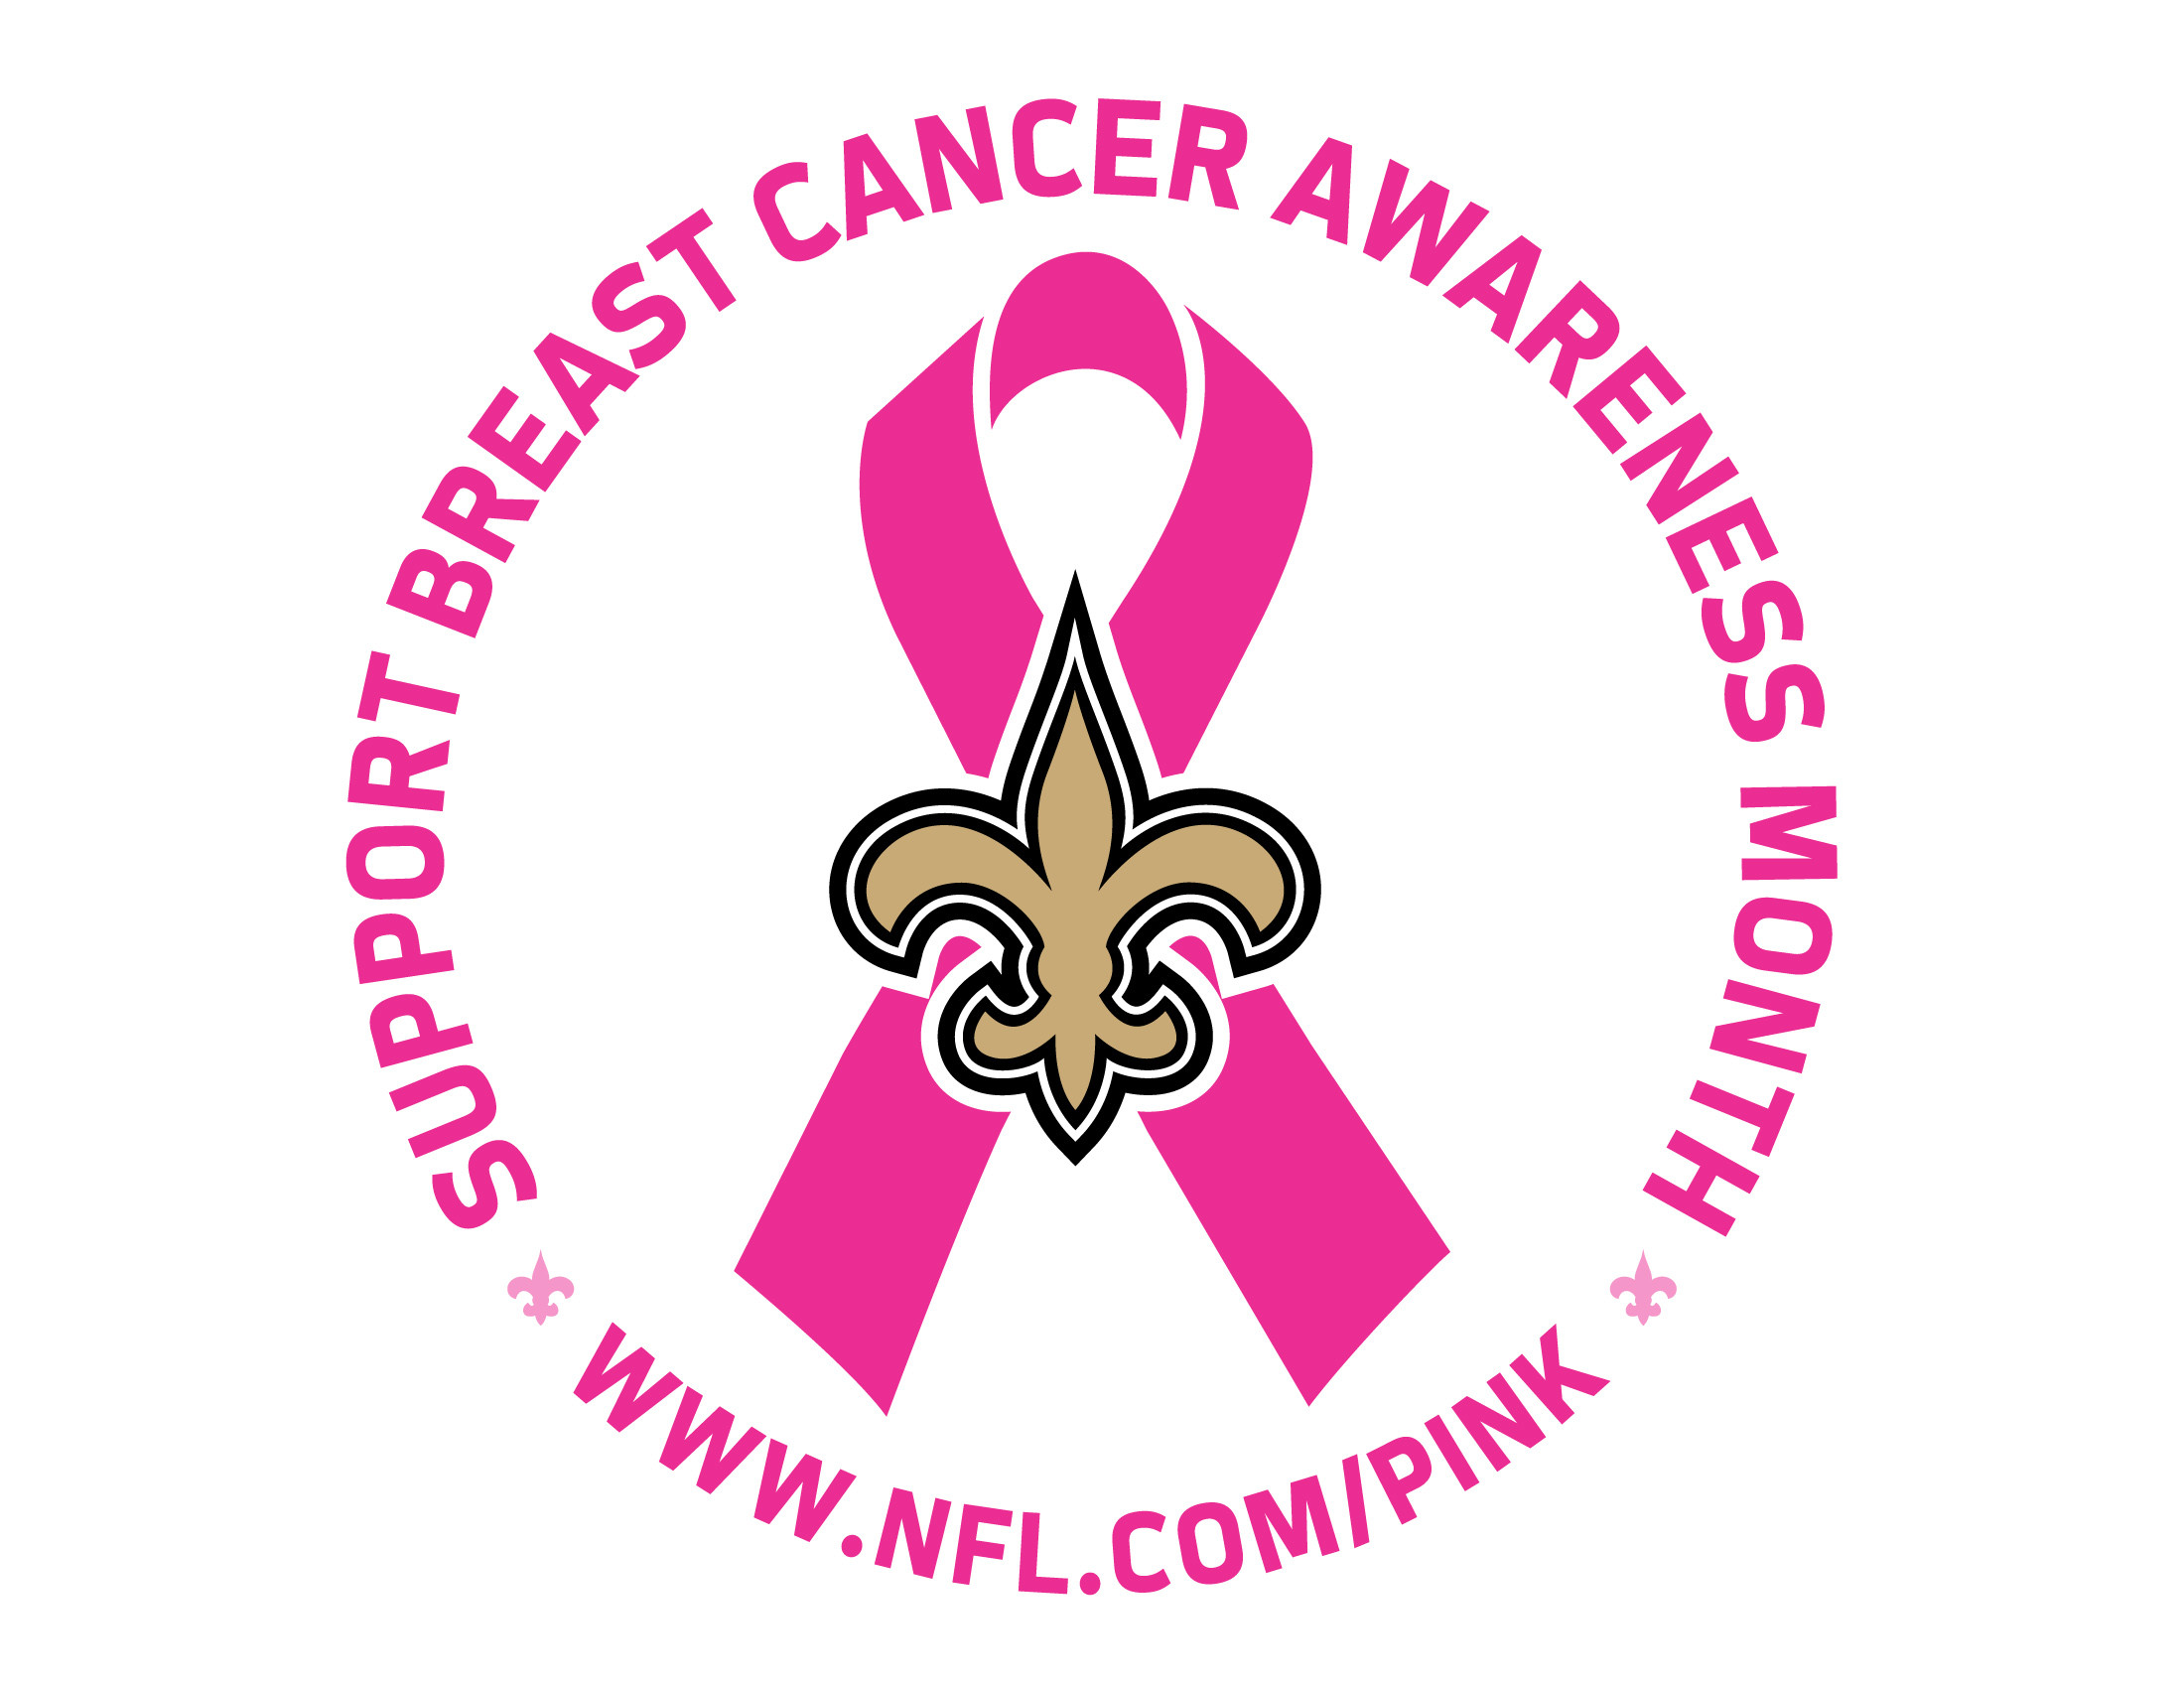 2200x1700 breast cancer awareness month logo | Saints Breast Cancer Awareness Logo